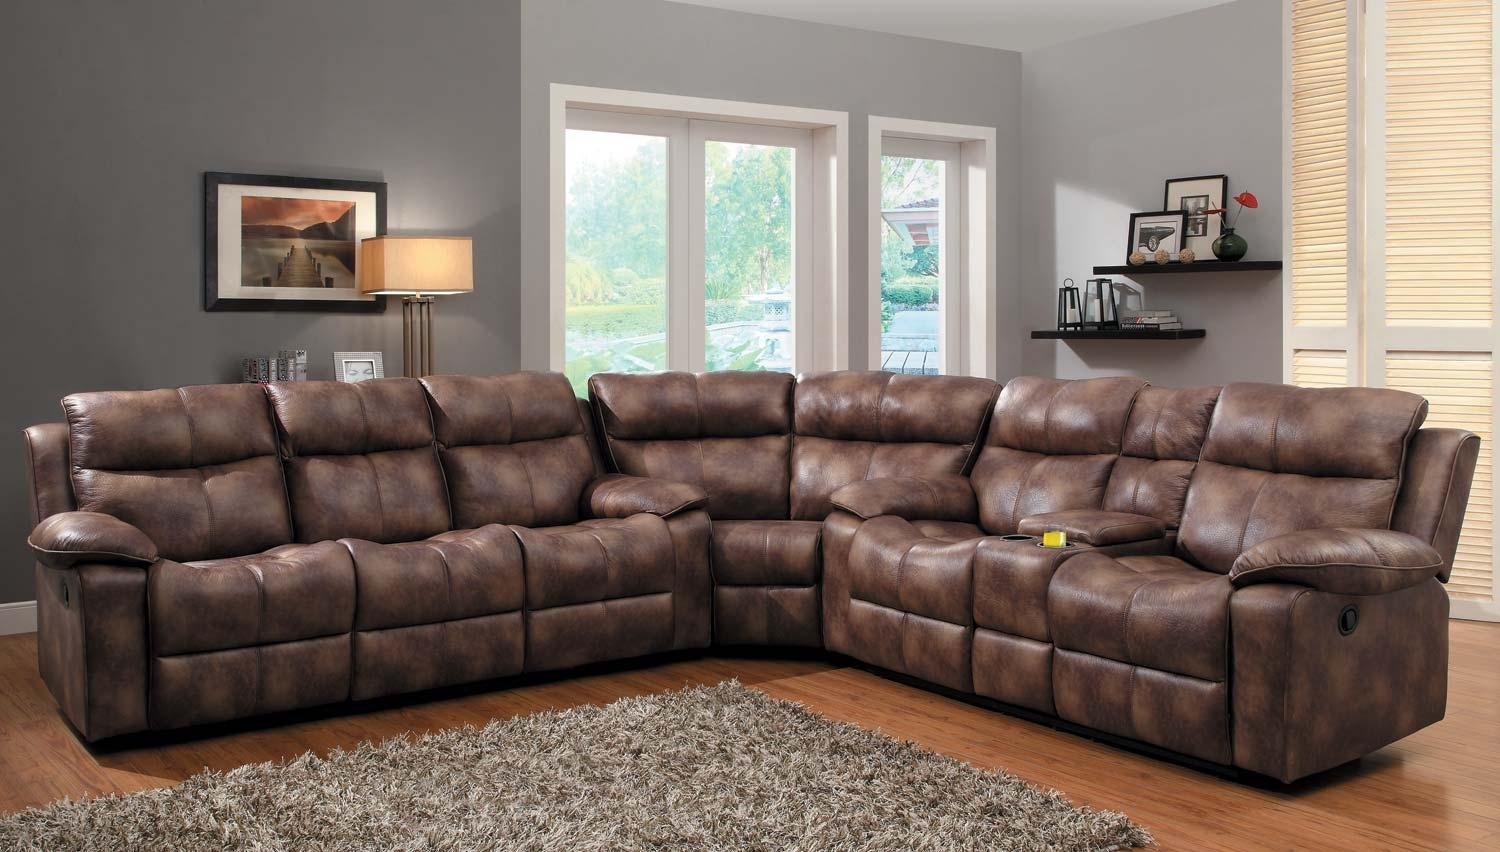 Sectional Sofa Sets Large Small Couches With Recliner Decor 4 Within Sectional Sofas That Turn Into Beds (View 6 of 10)